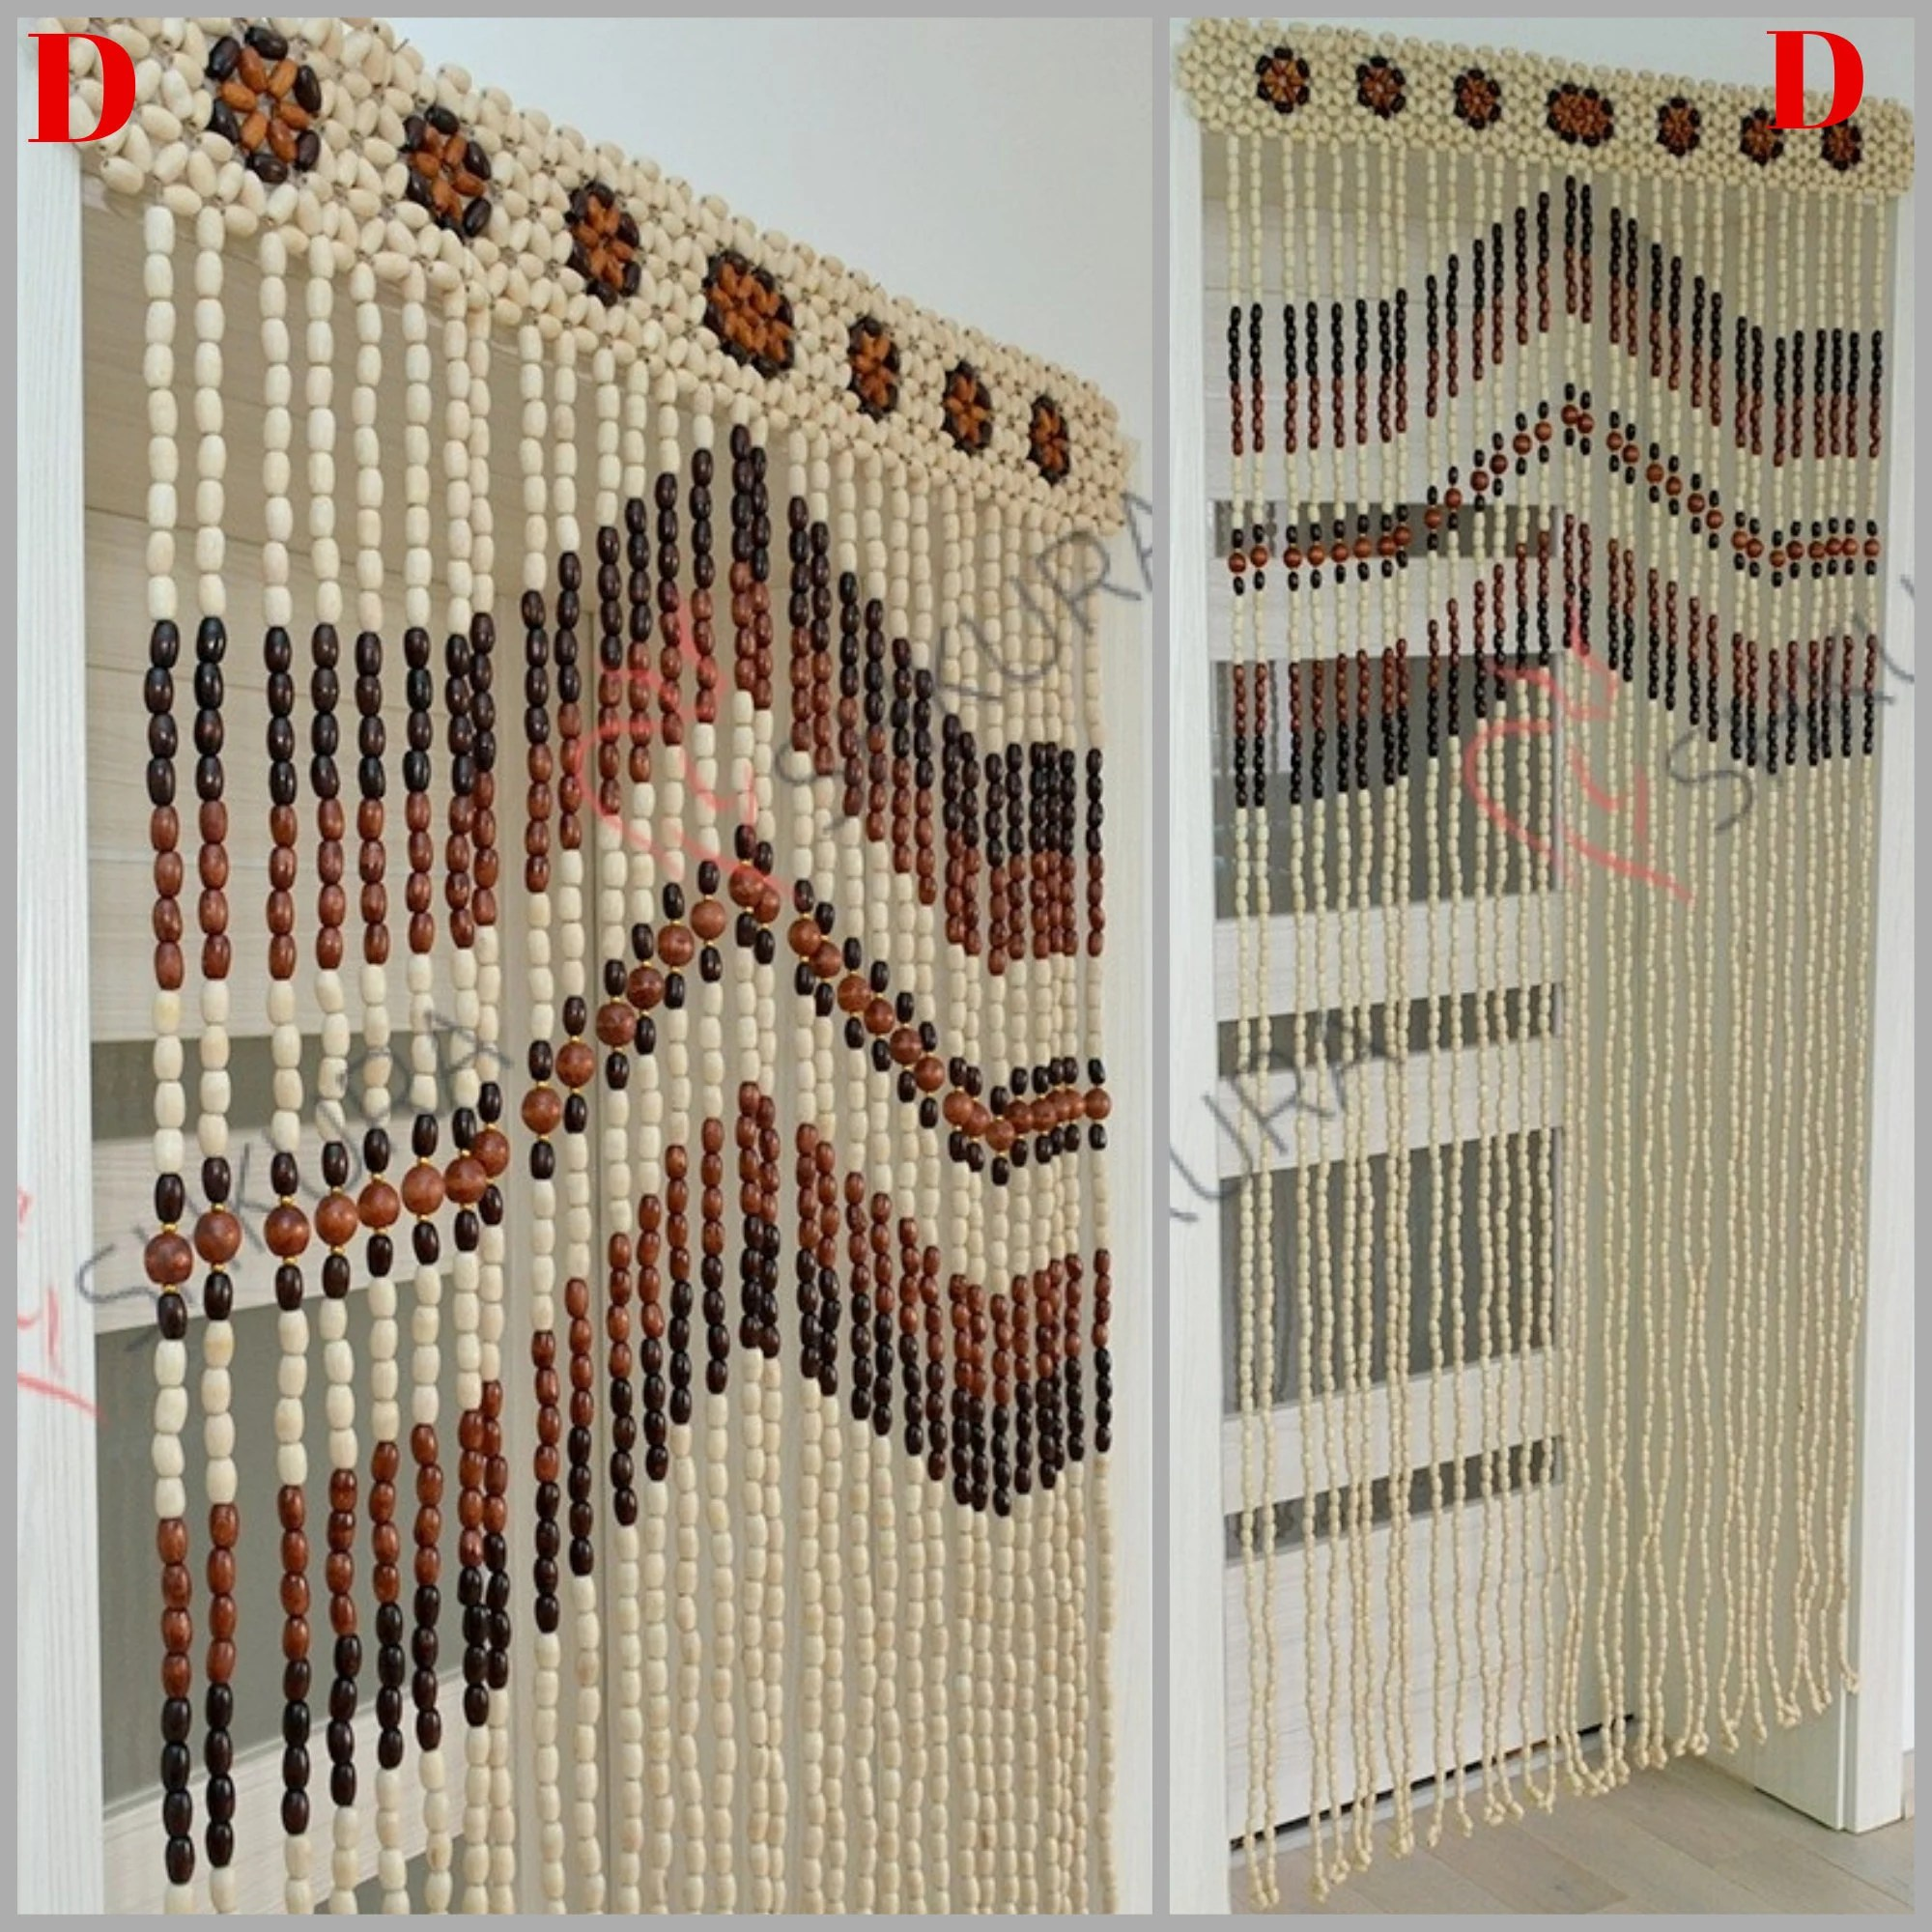 Wooden Door Blinds Beaded Door Curtain Ivory Color Decor Wood Curtain Gift Blinds Door Beads Curtains Beaded Wood Bead Door Curtain Handmade Door Curtain